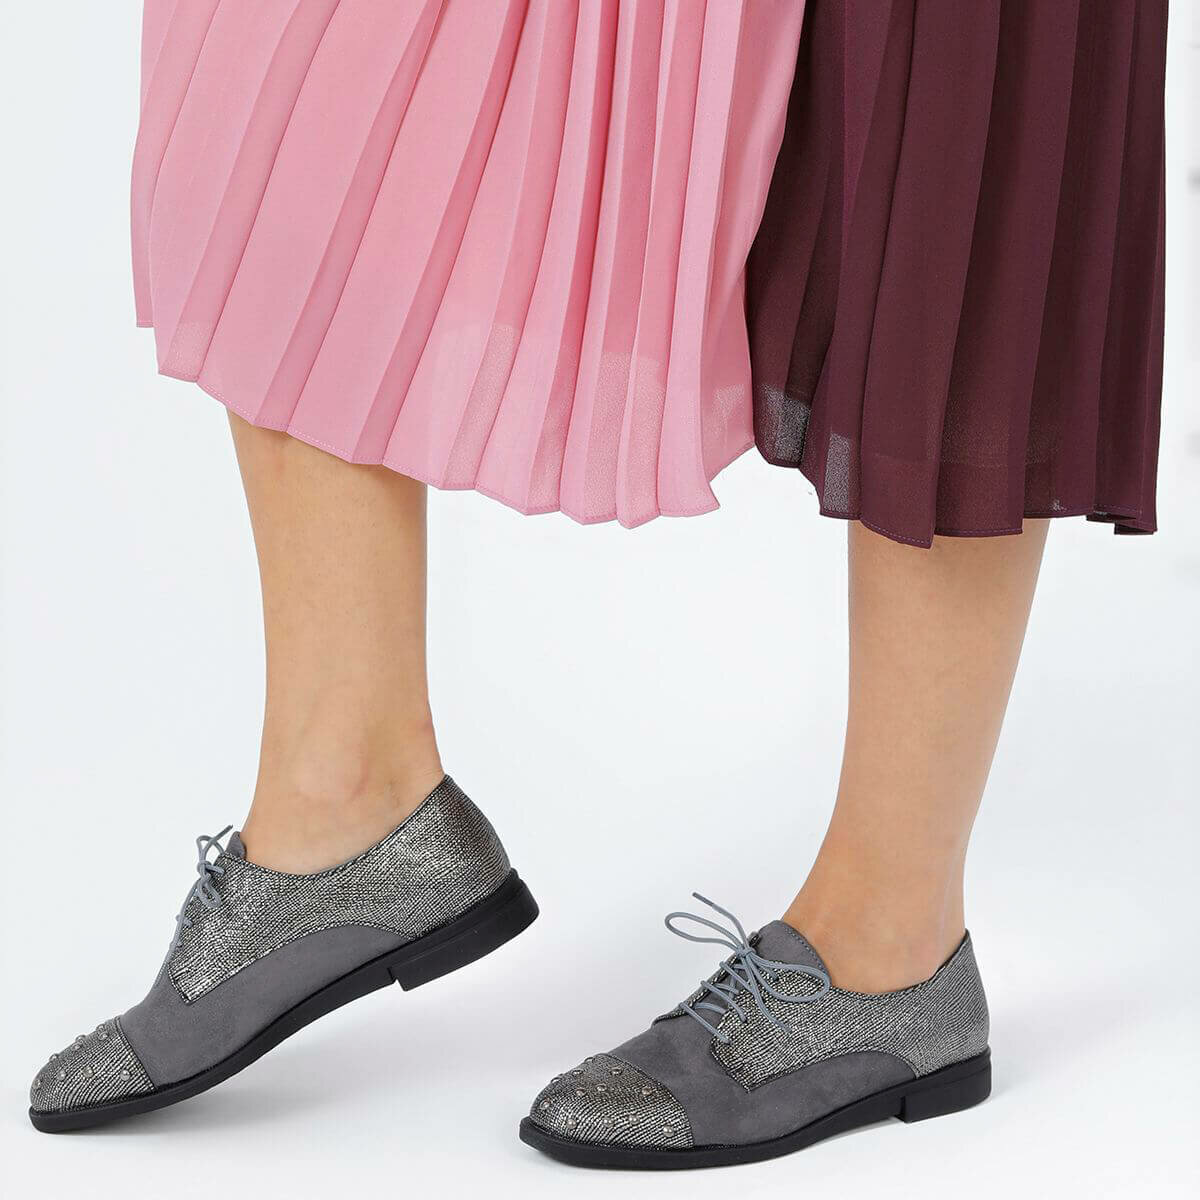 FLO KUMIHO06Y B Silver Women Shoes BUTIGO